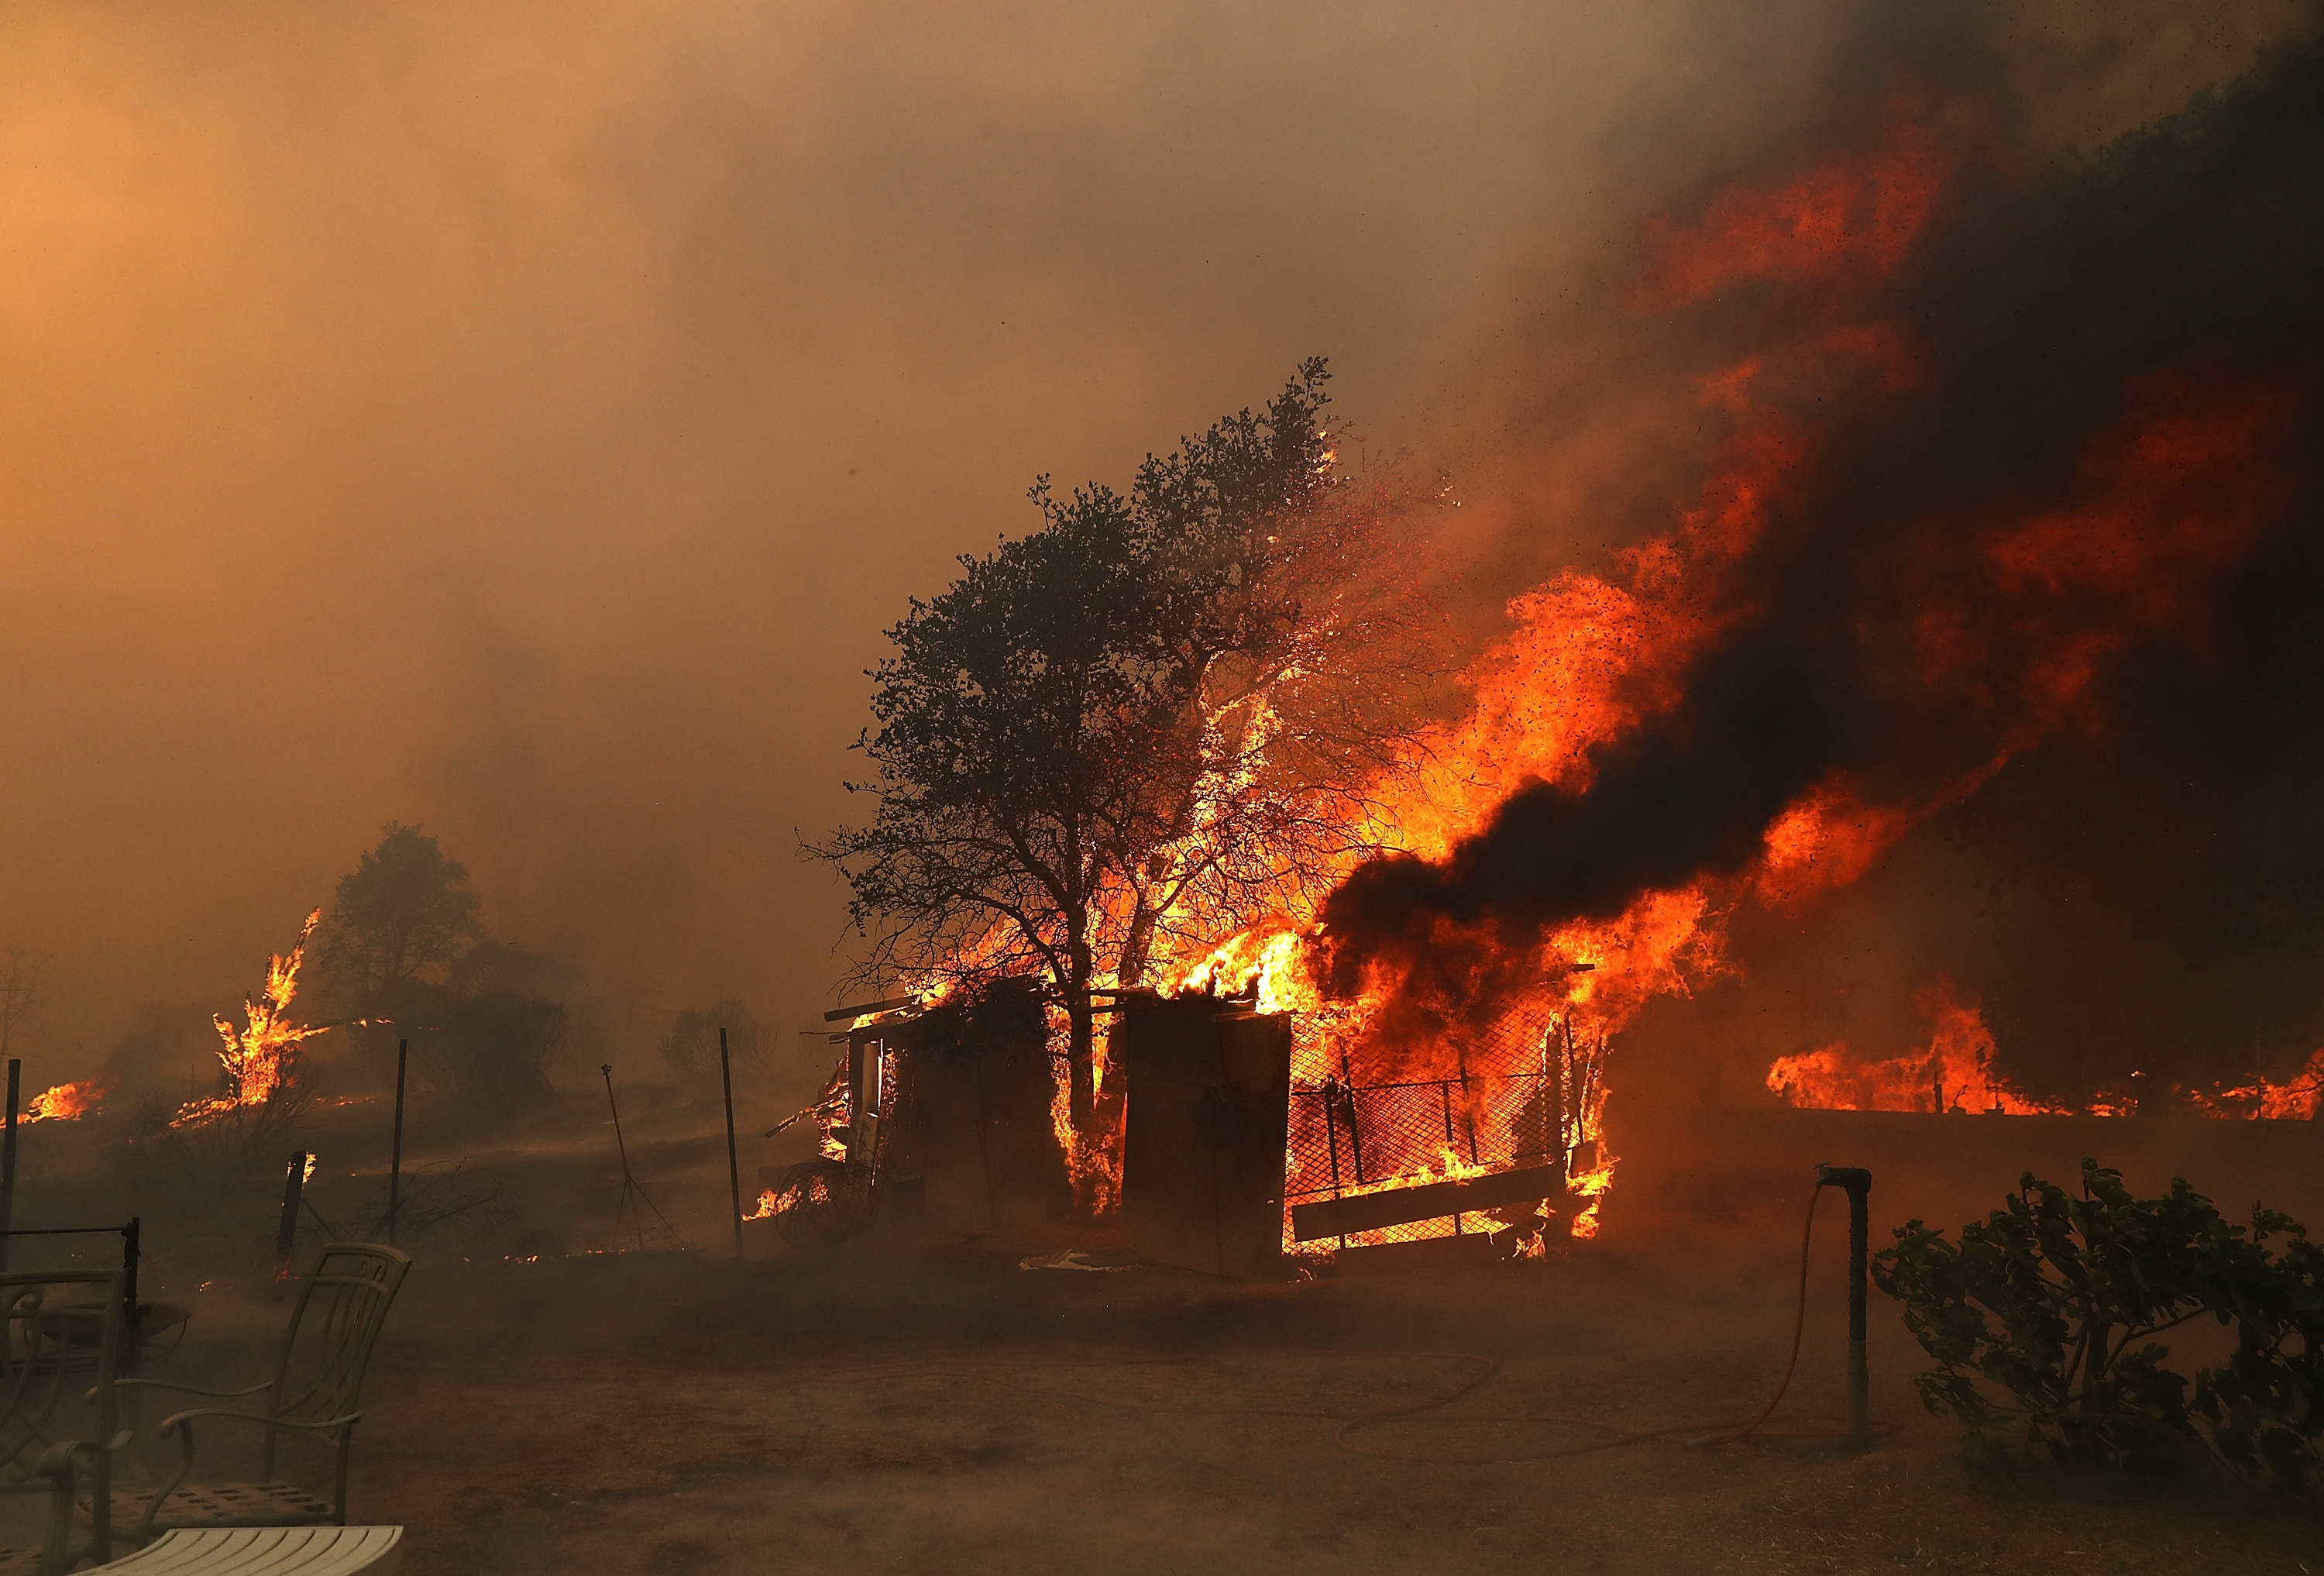 "<div class=""meta image-caption""><div class=""origin-logo origin-image none""><span>none</span></div><span class=""caption-text"">A structure burns as the River Fire burns through the area on July 31, 2018 in Lakeport, California. (Justin Sullivan/Getty Images)</span></div>"